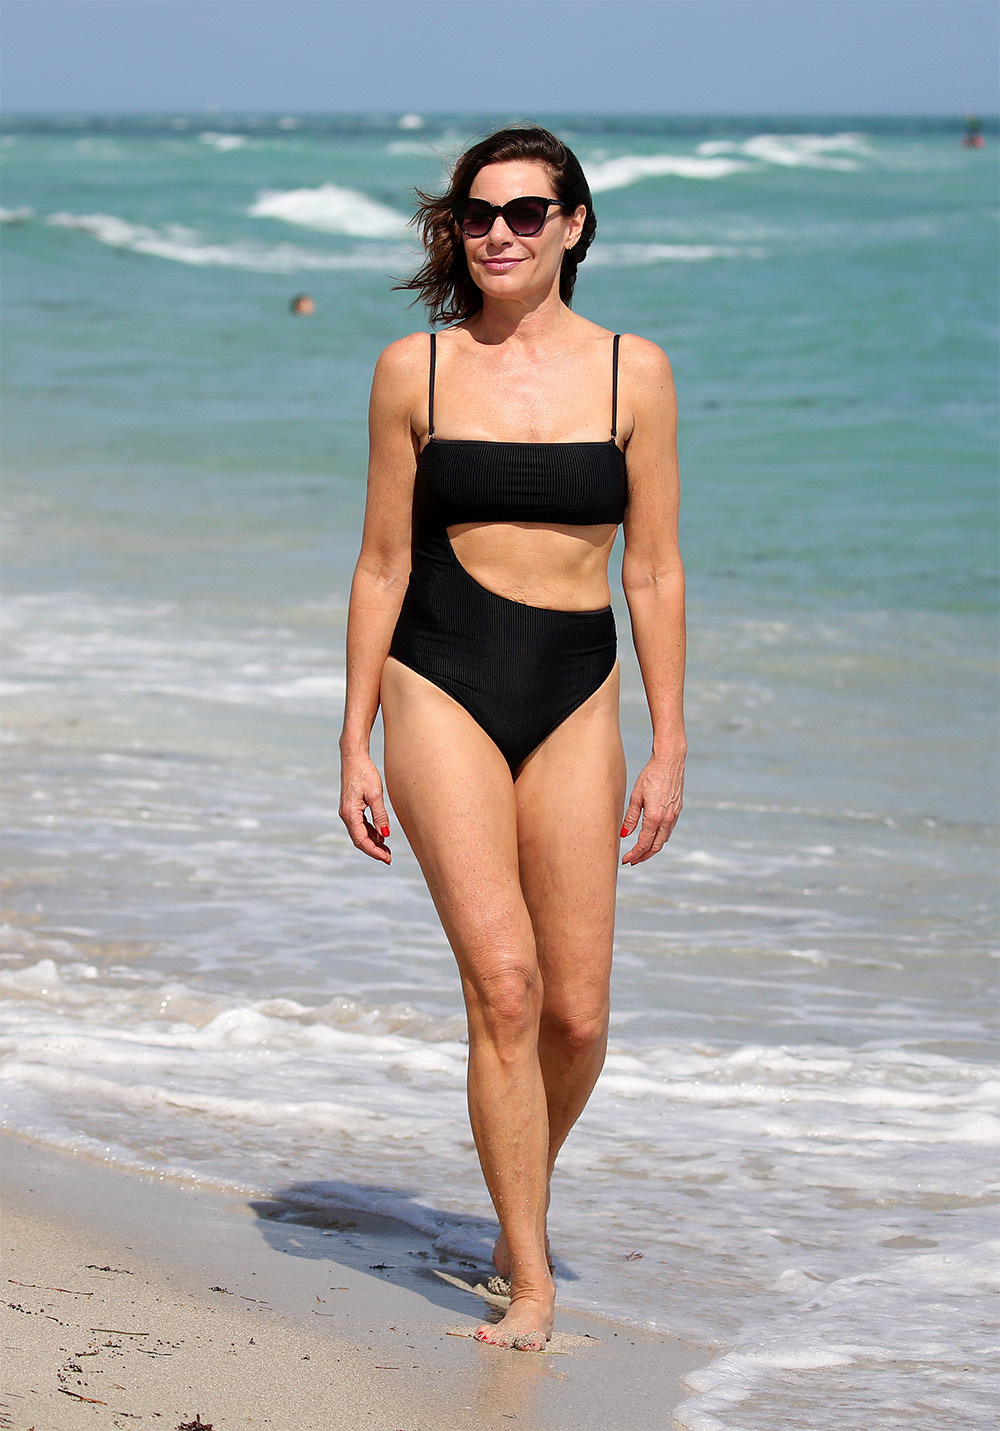 Real Housewives of New York star Luann de Lesseps looks amazing in a black bikini on the beach in Miami